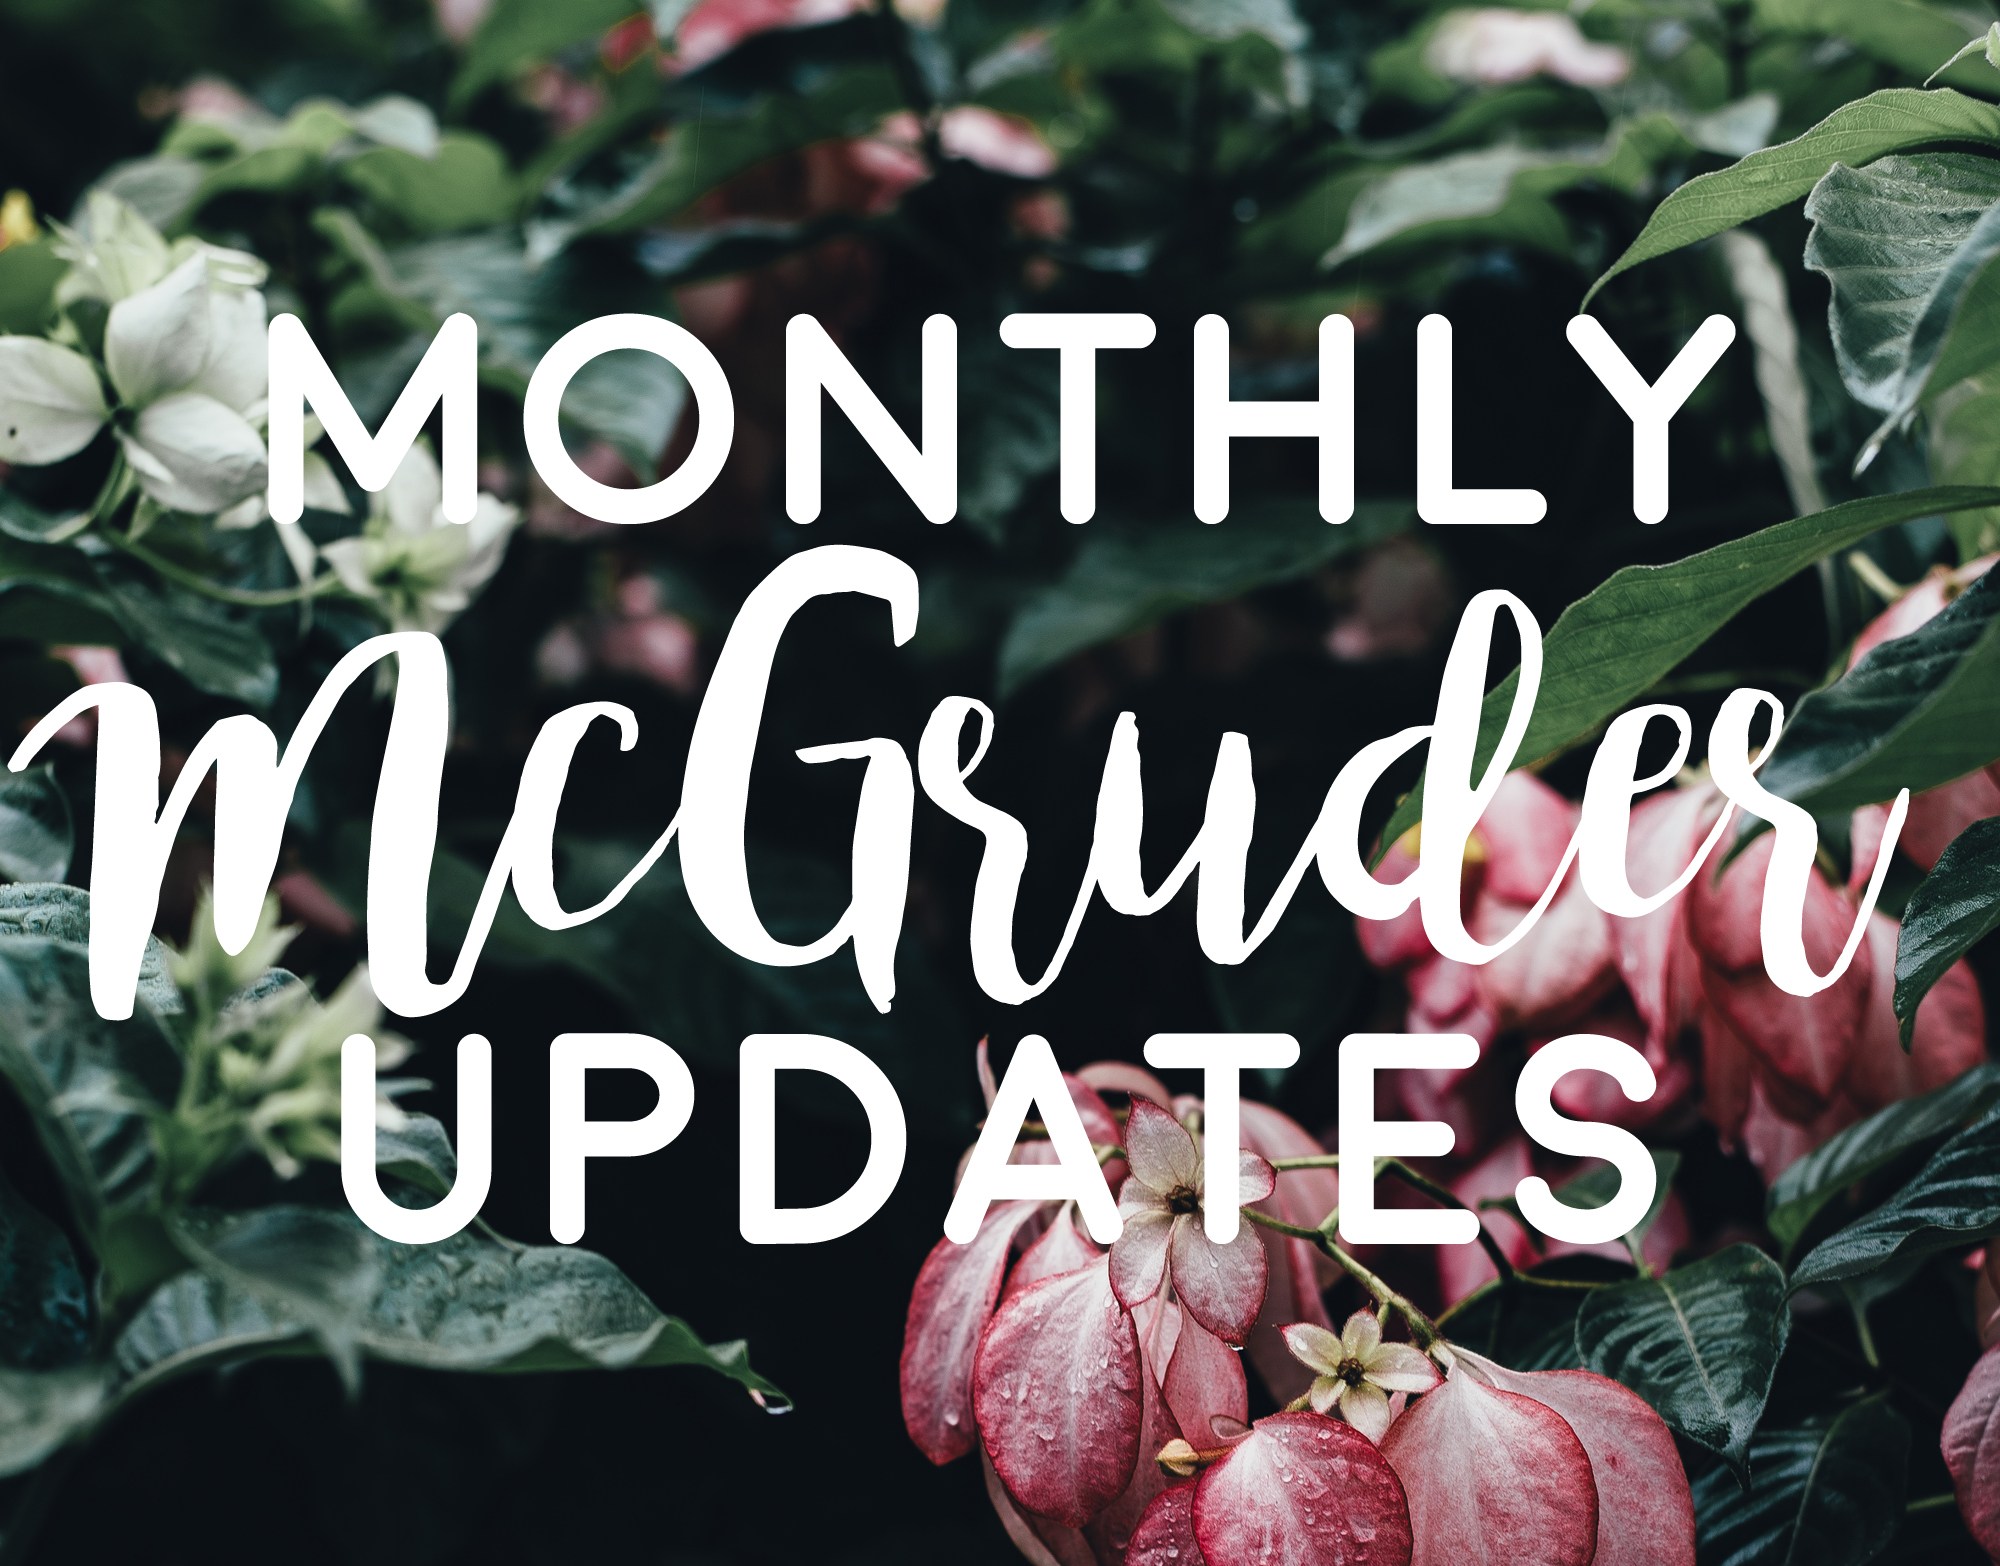 Monthly McGruder Updates via Wit & Travesty